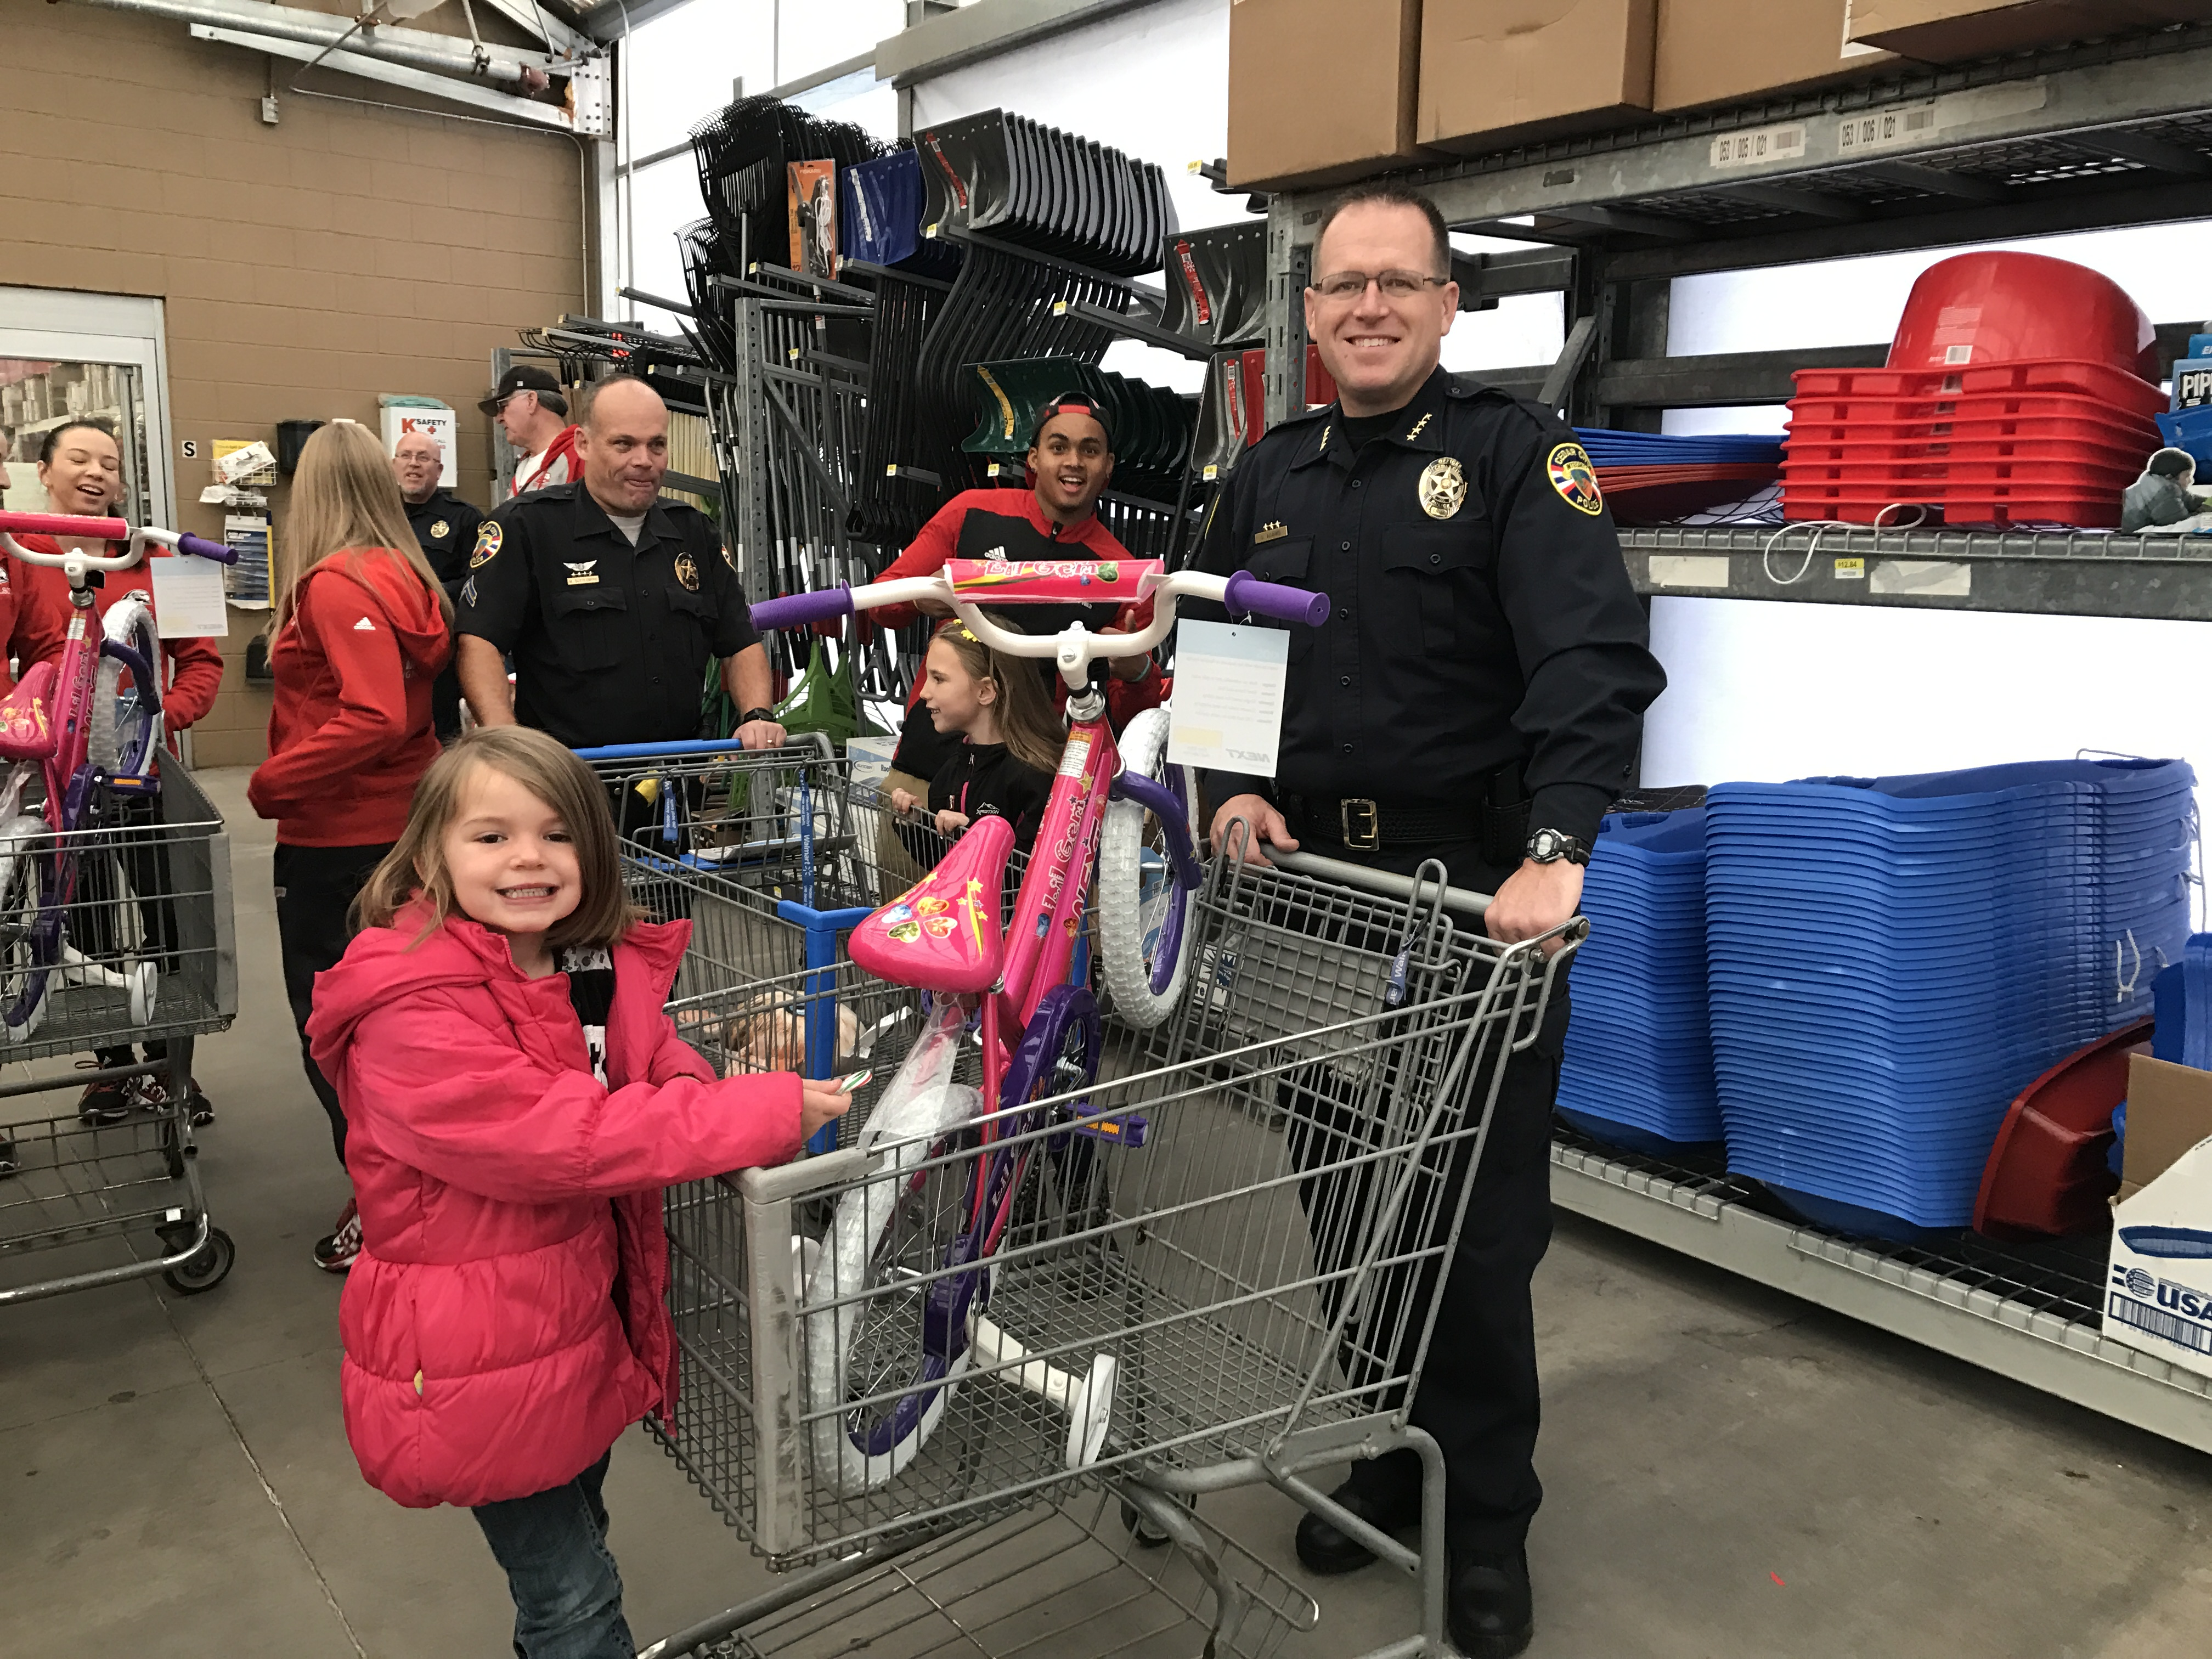 Cedar City Police Chief Darin Adams poses with the child he was paired with at the Shop with a Cop event. St. George, Utah, Dec. 10, 2016 | Photo by Tracie Sullivan, St. George / Cedar City News